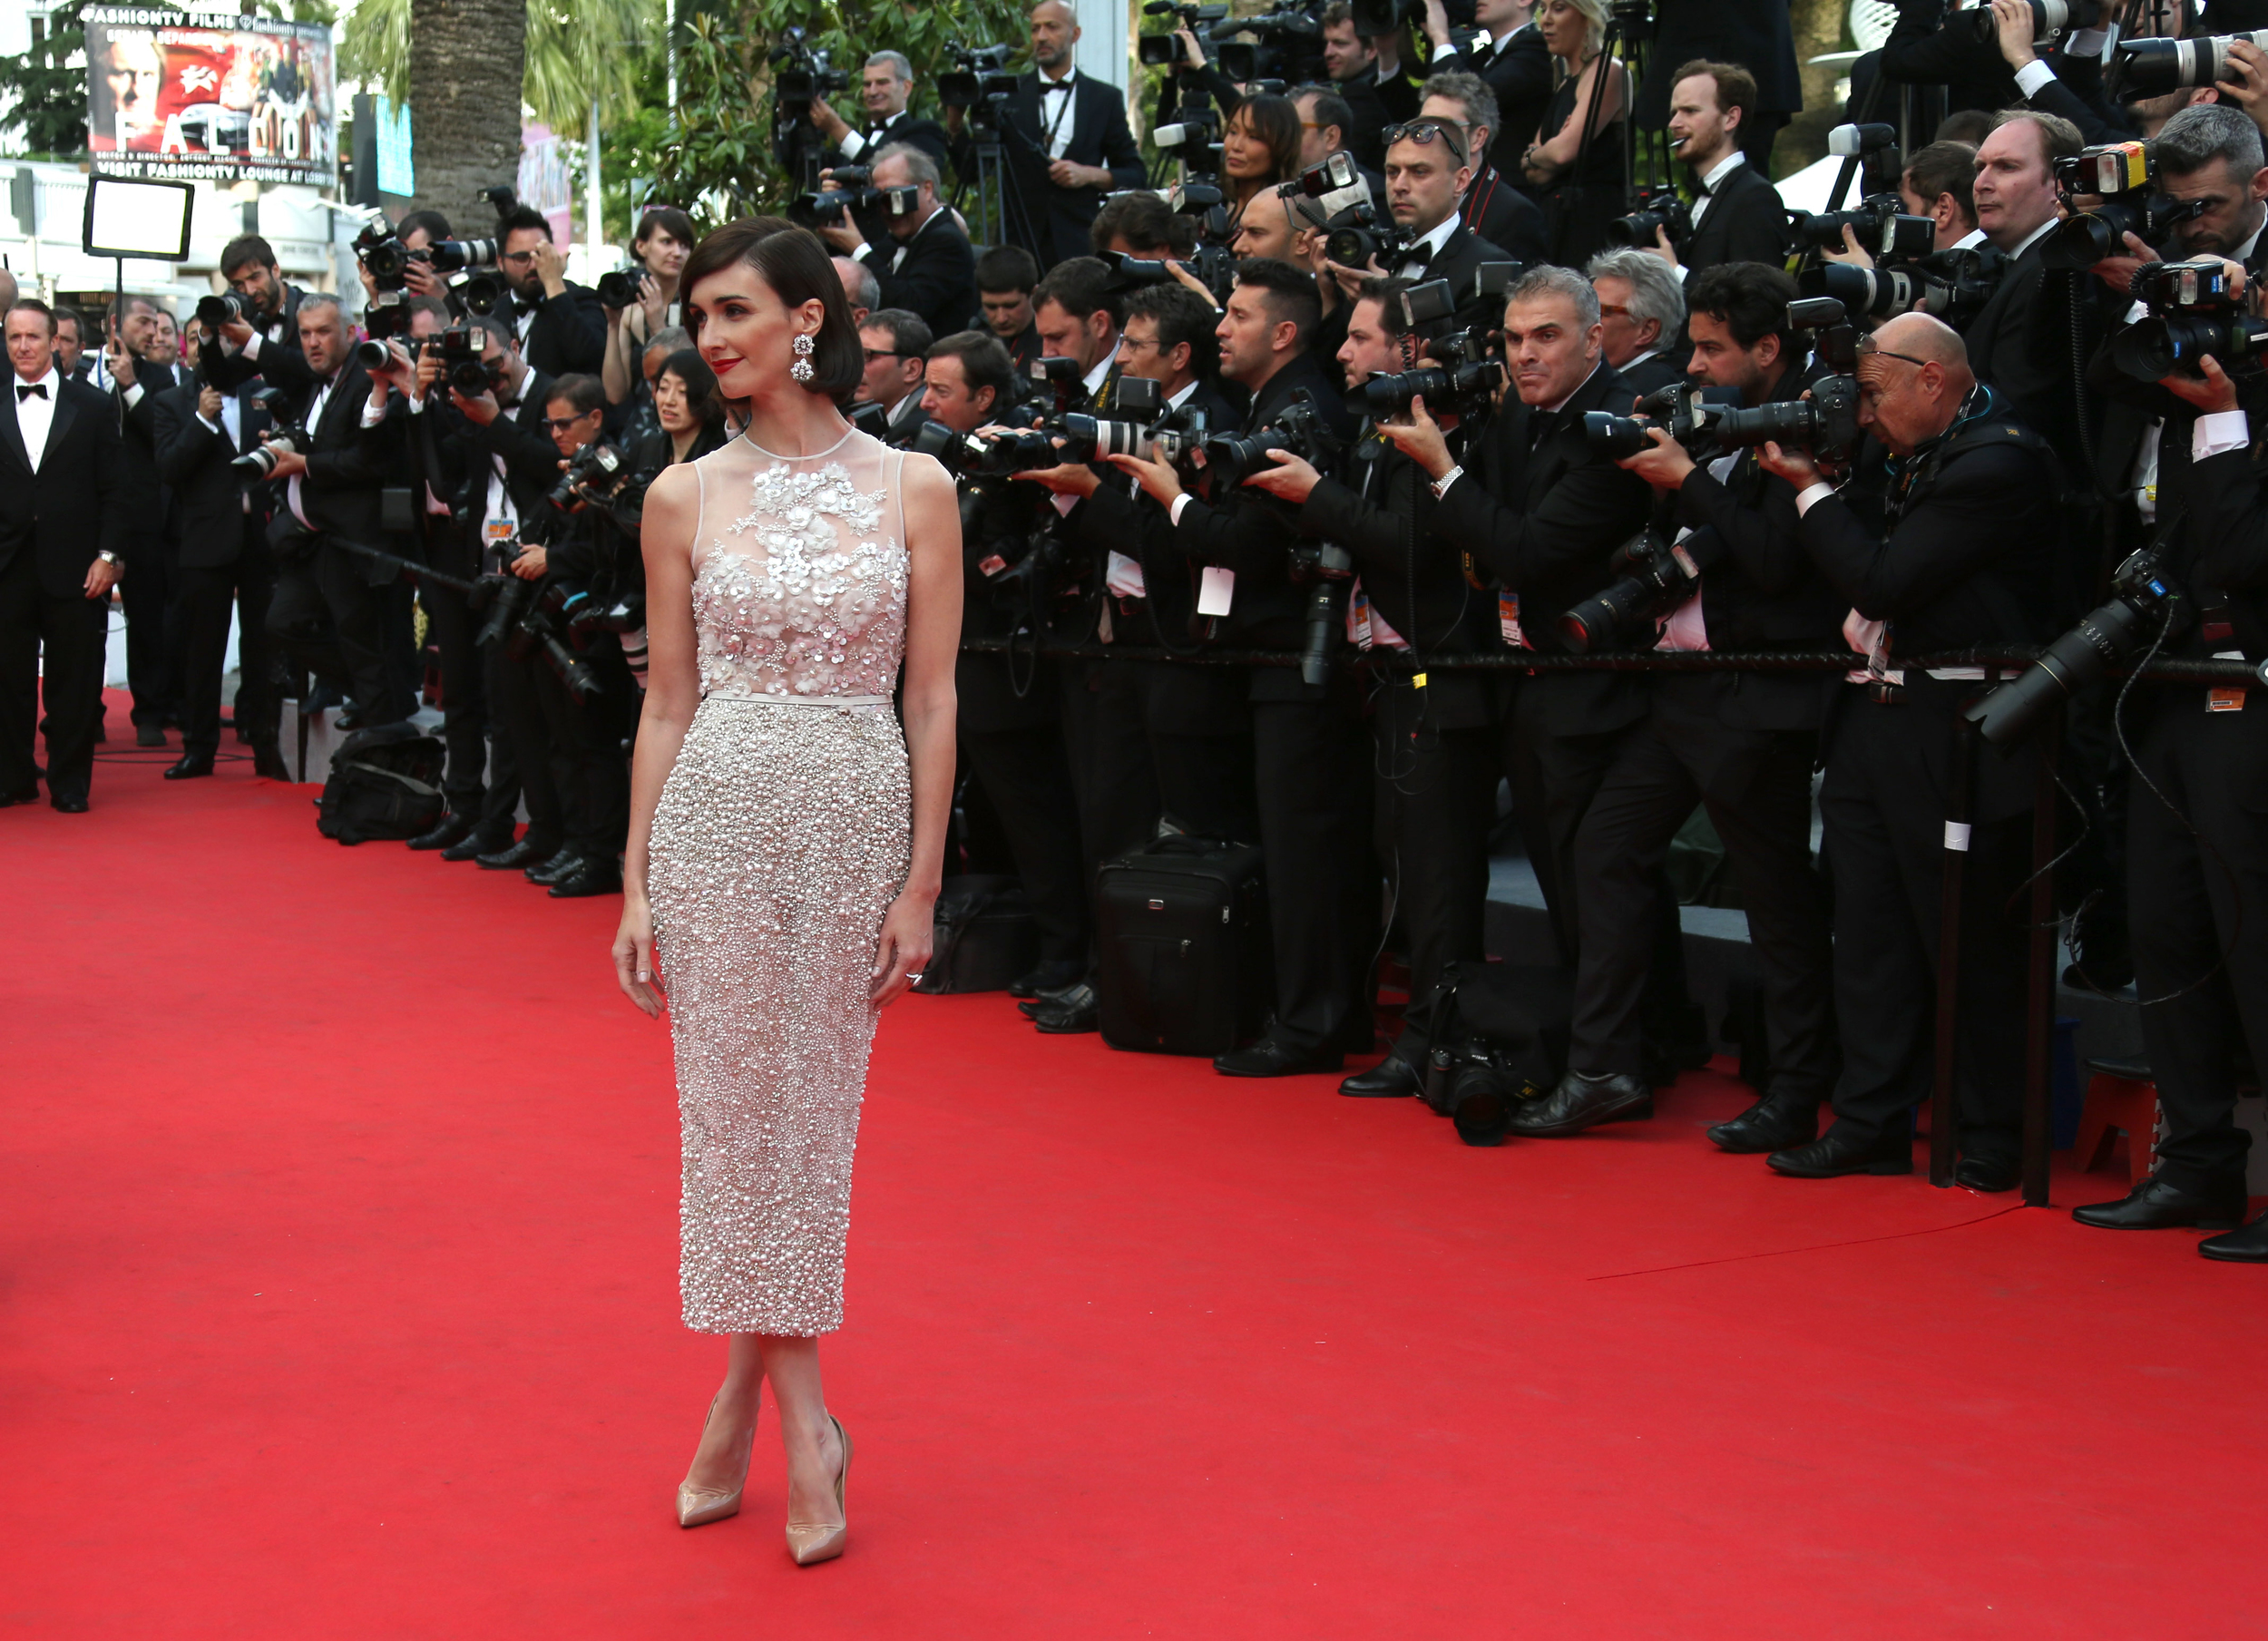 Paz Vega in Elie Saab couture and Christian Louboutin shoes